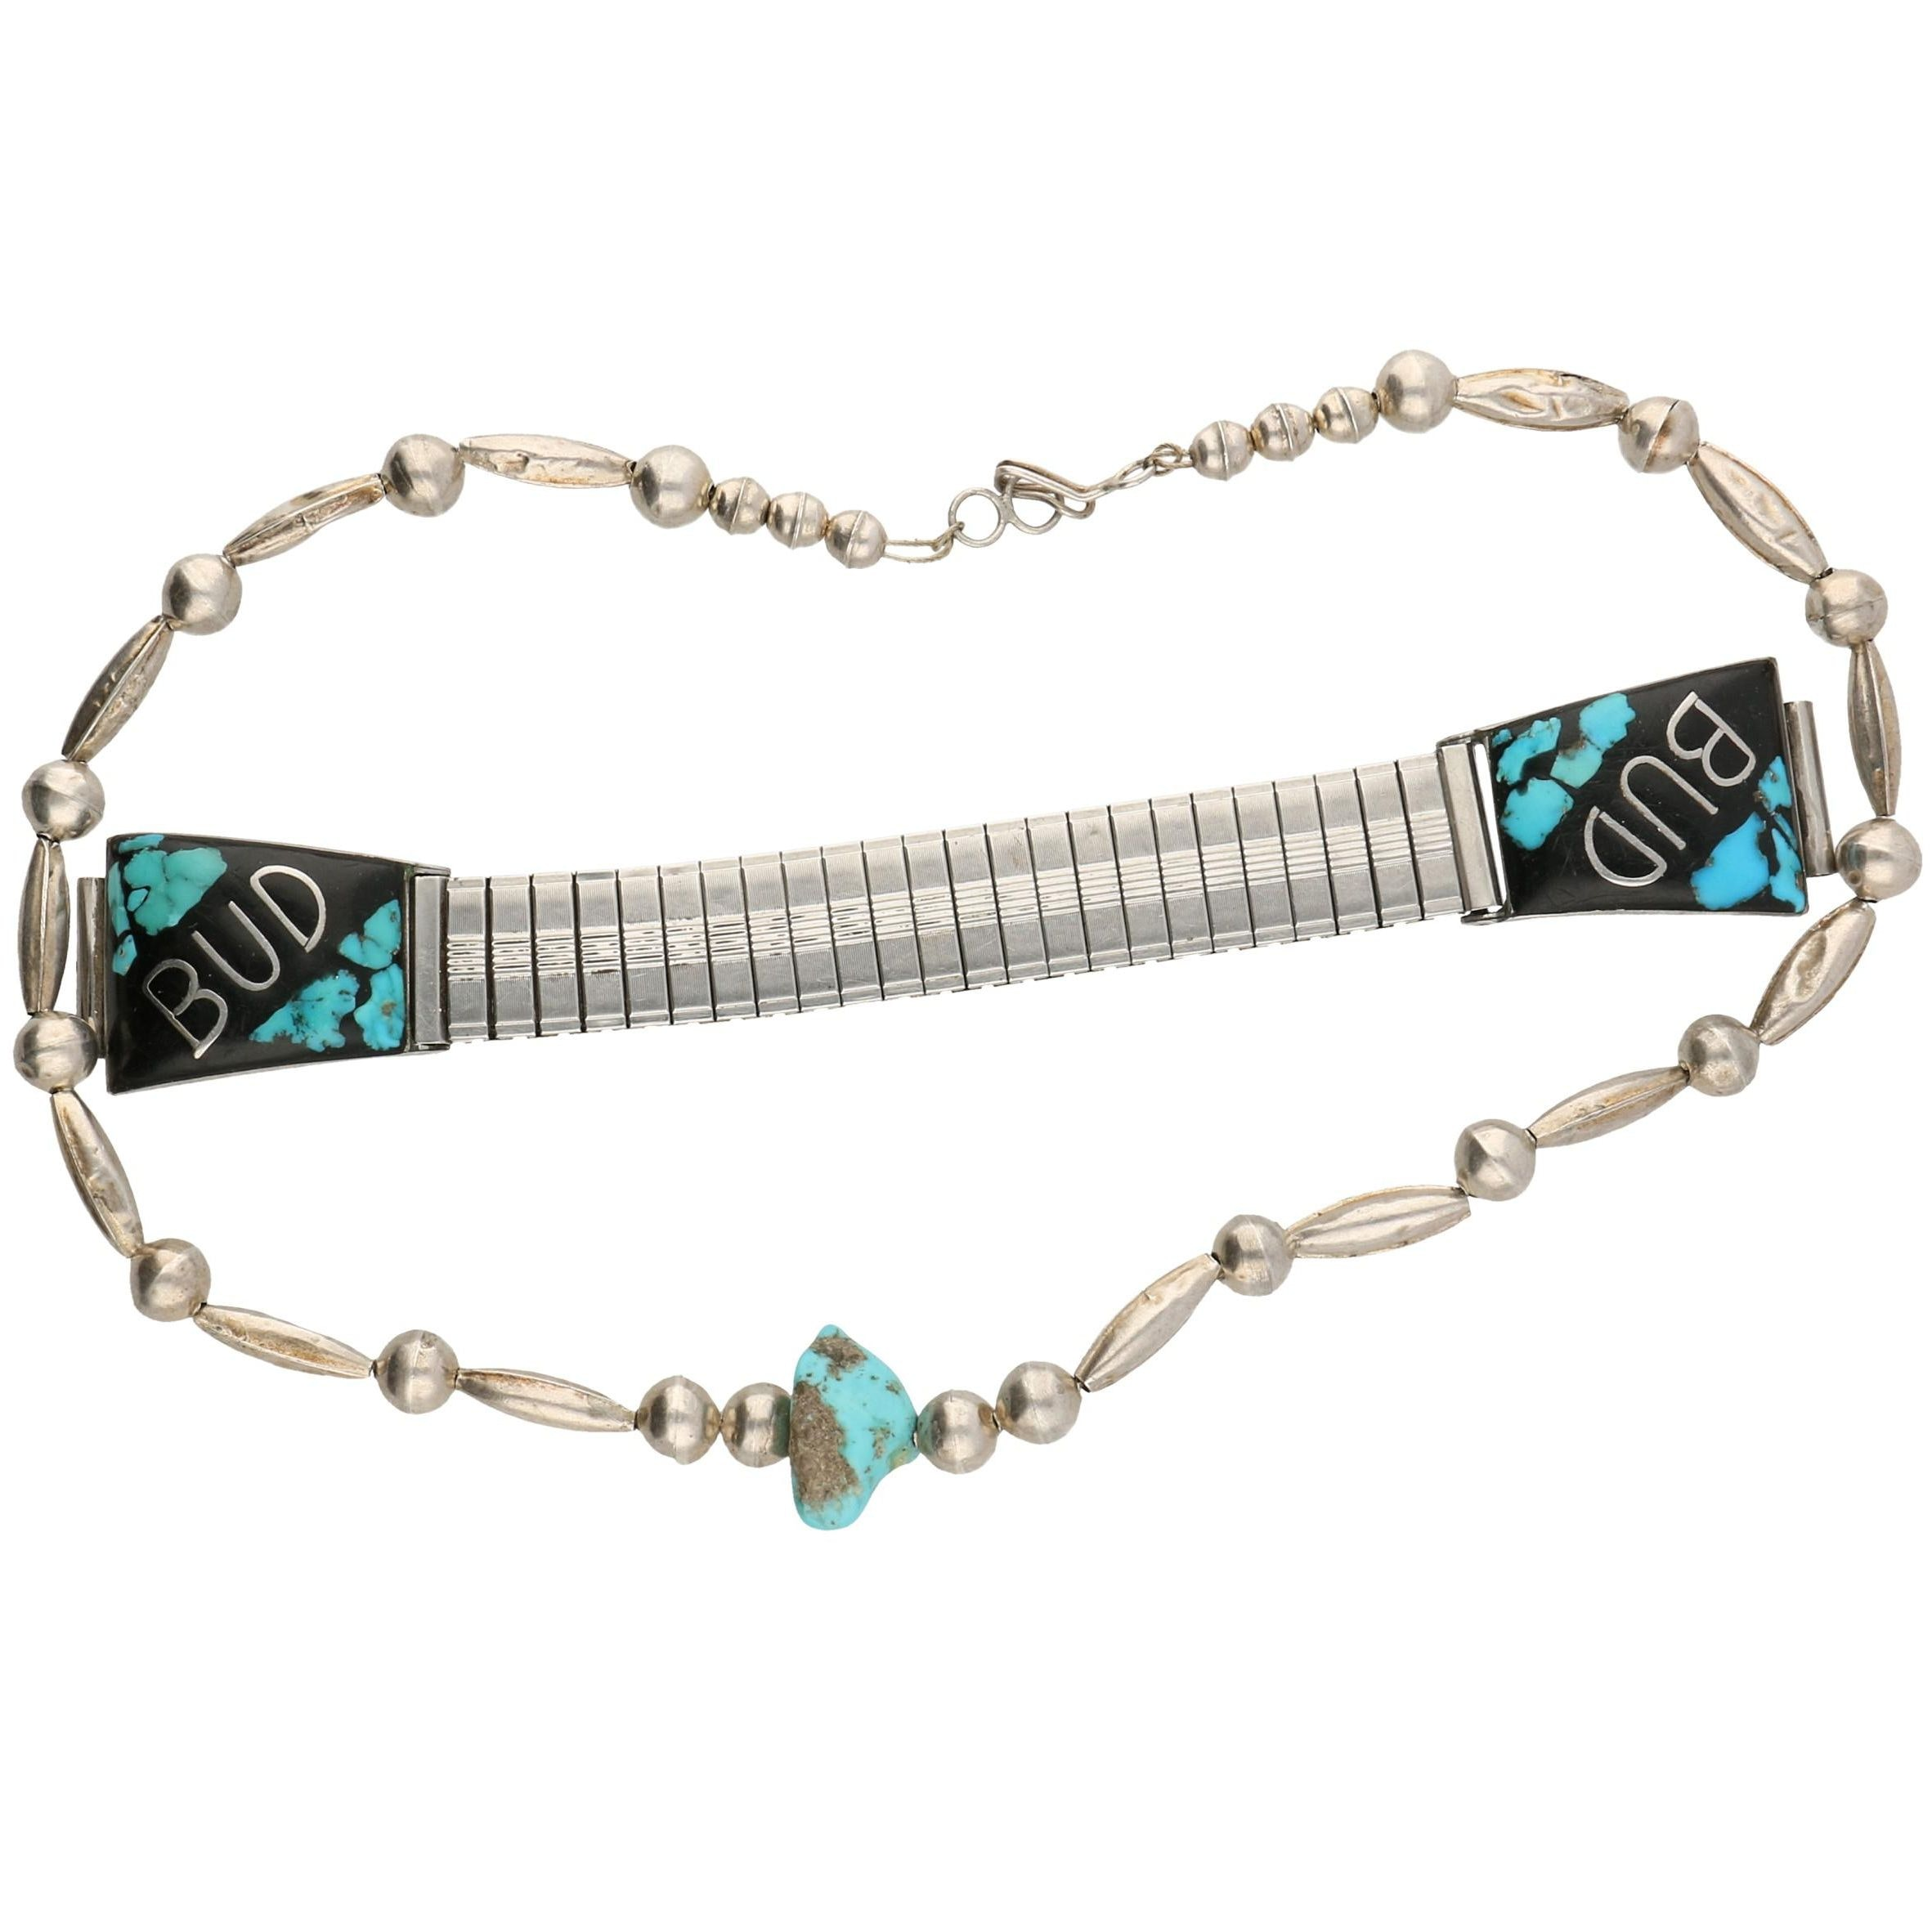 Sterling Necklace and a Stainless Steel Watchband With Turquoise Accents